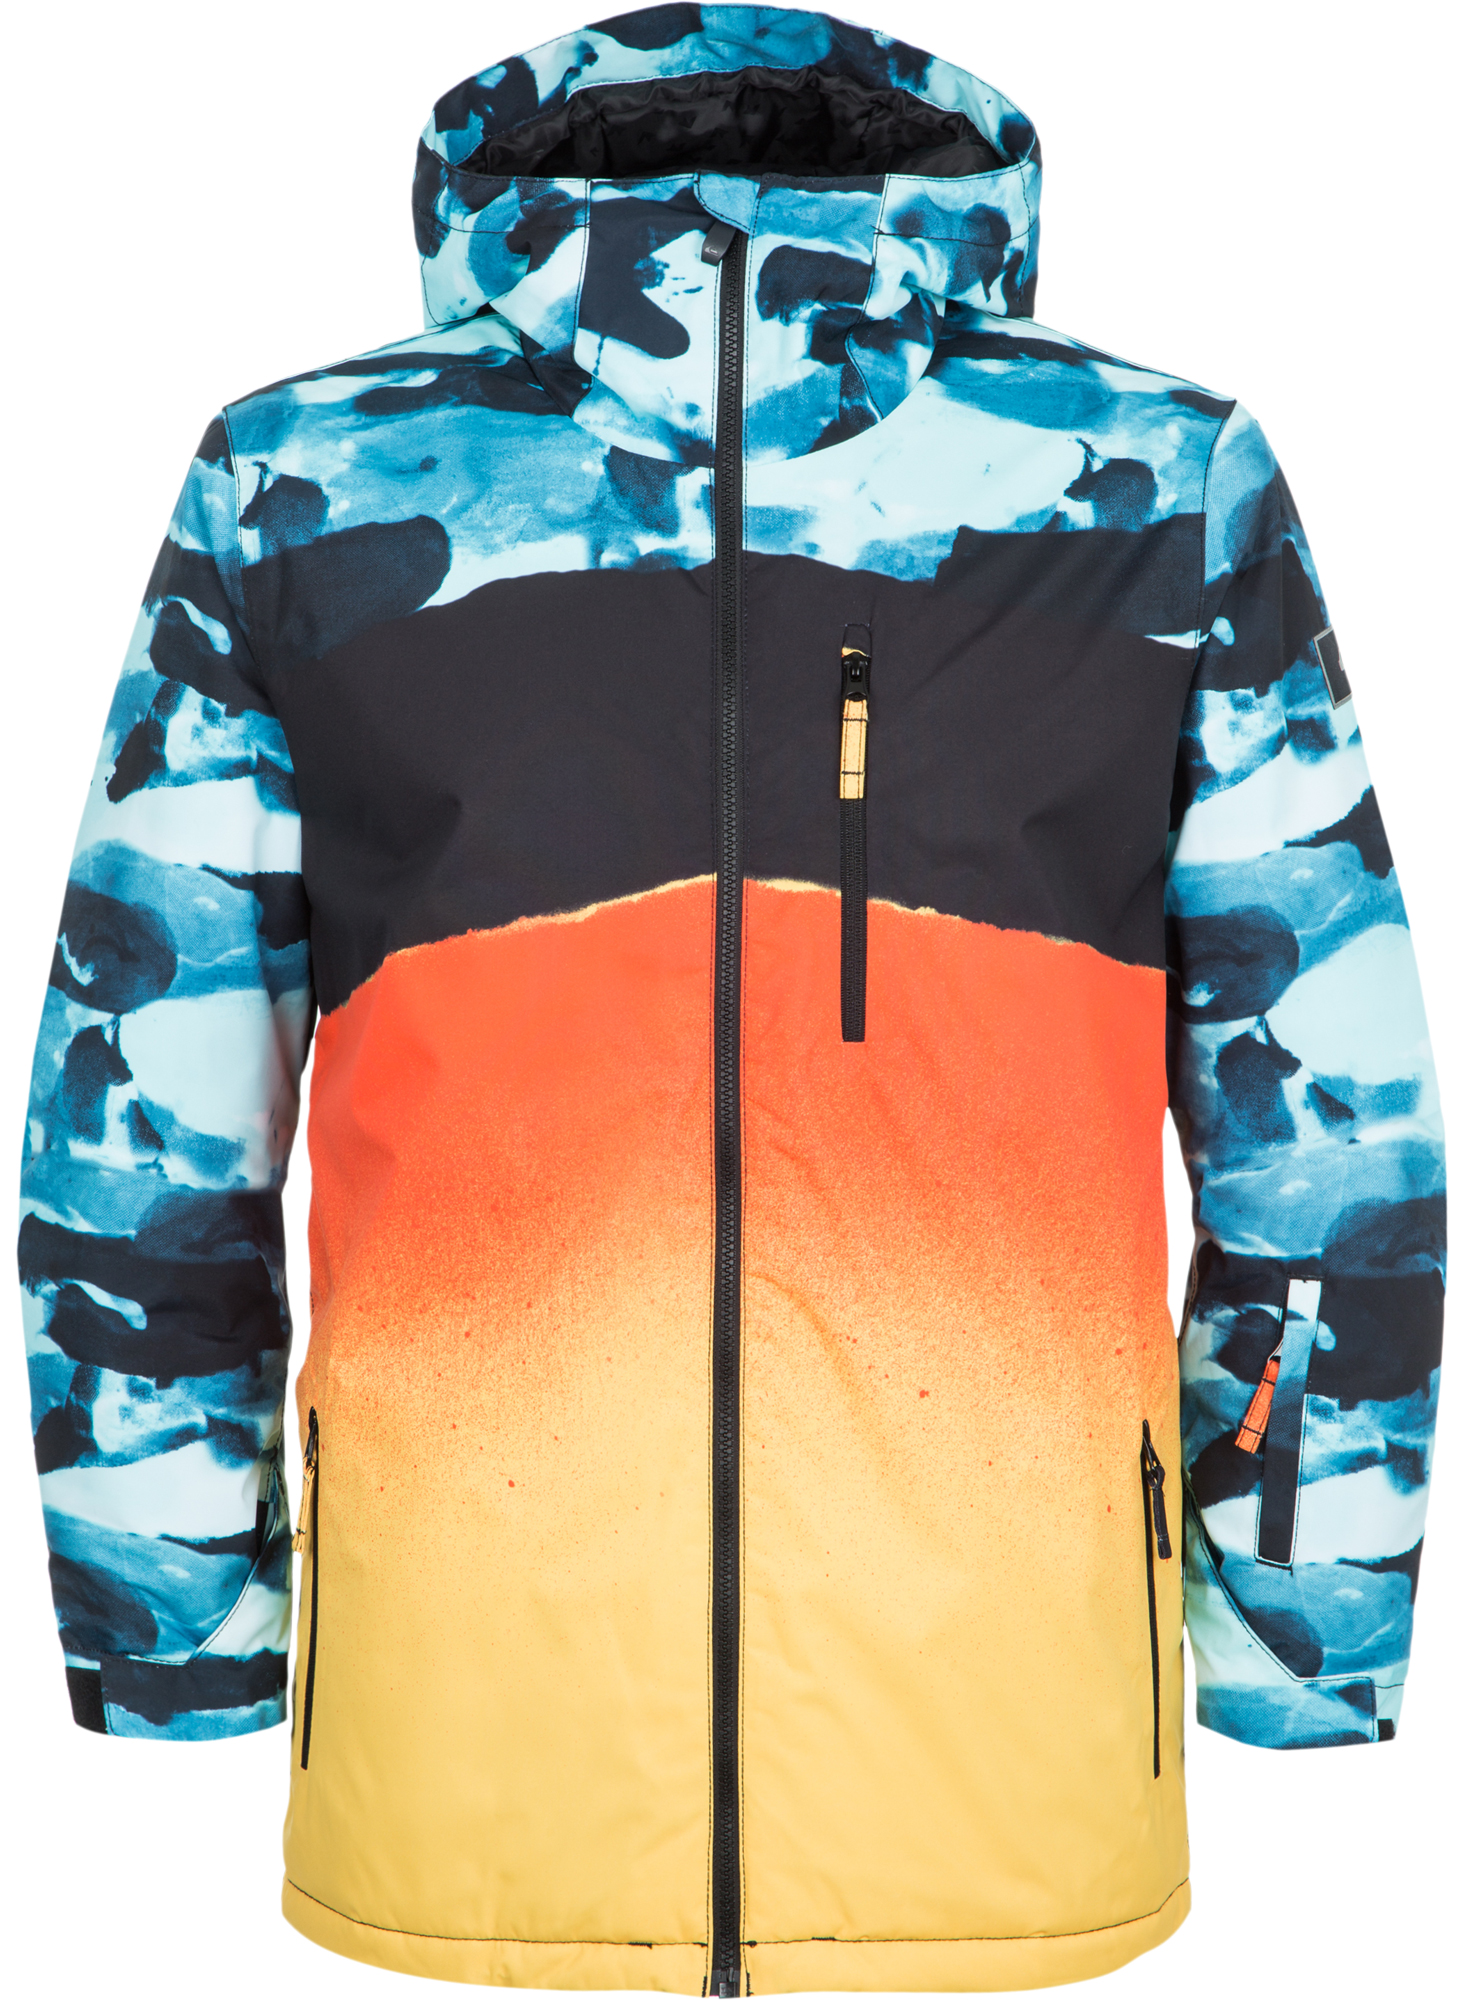 Quiksilver Куртка утепленная мужская Quiksilver Mission Engineered quiksilver qu192bmvnw64